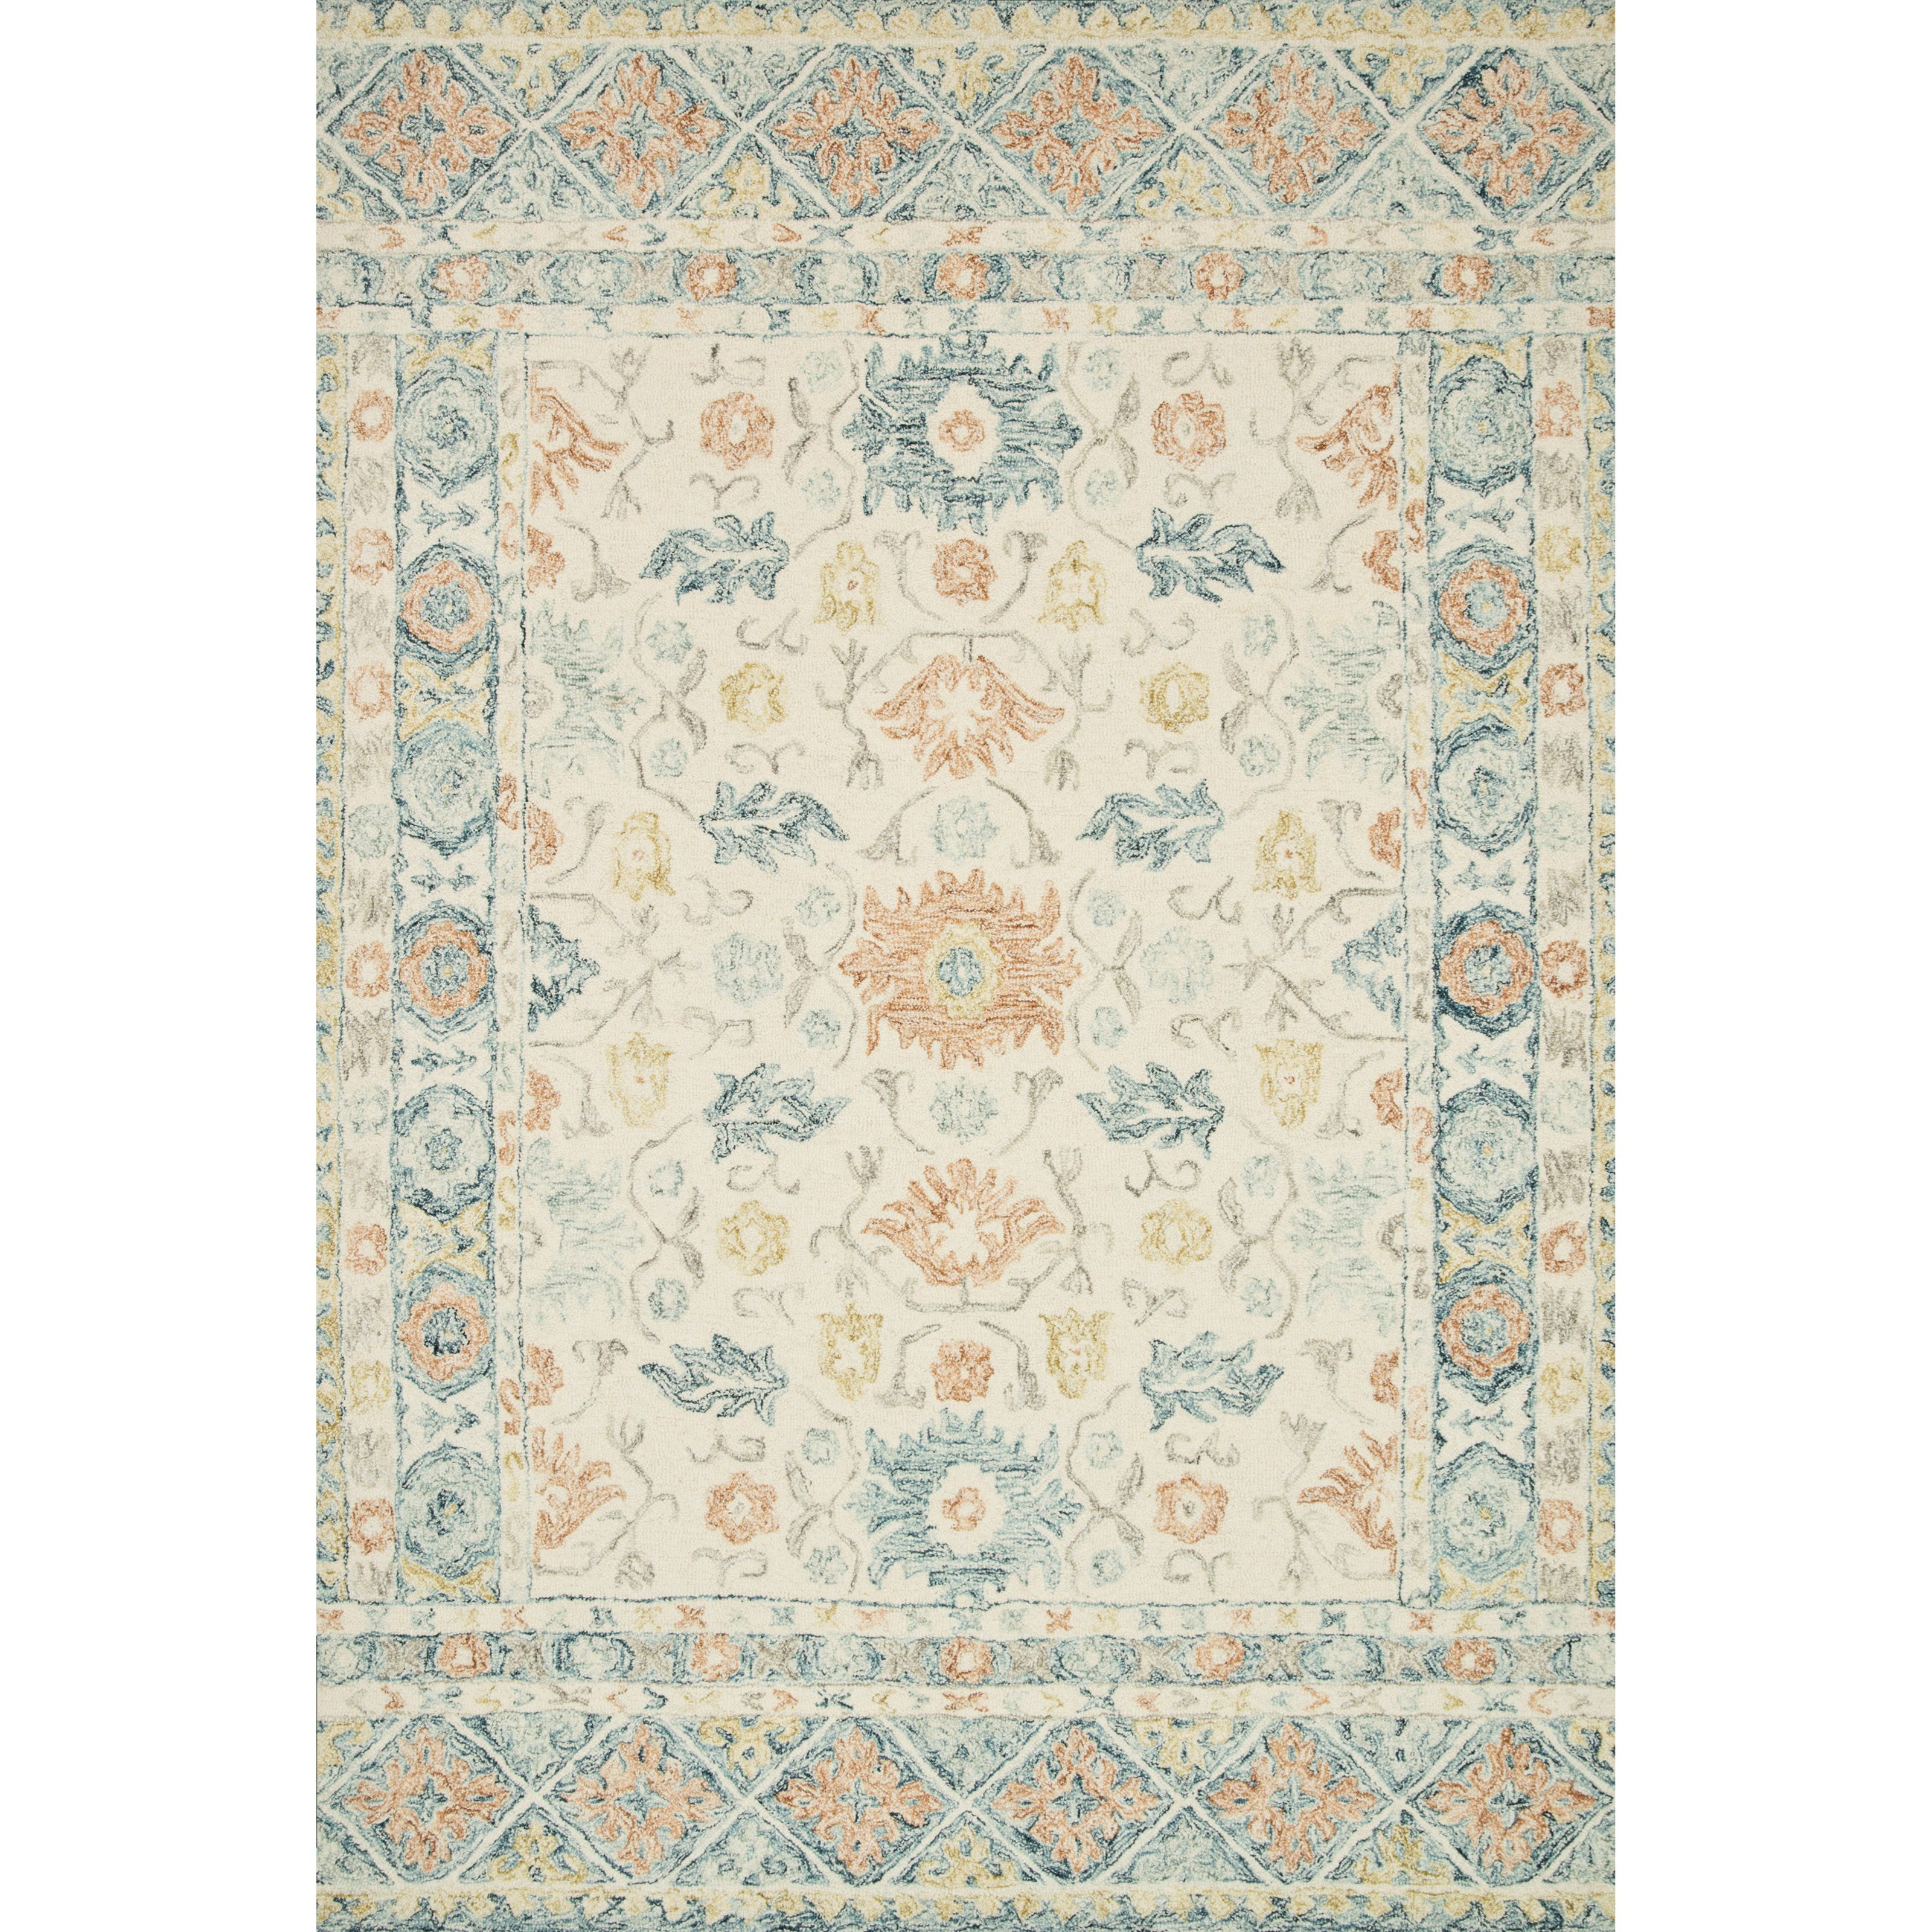 """Norabel 7'9"""" x 9'9"""" Ivory / Multi Rug by Loloi Rugs at Virginia Furniture Market"""